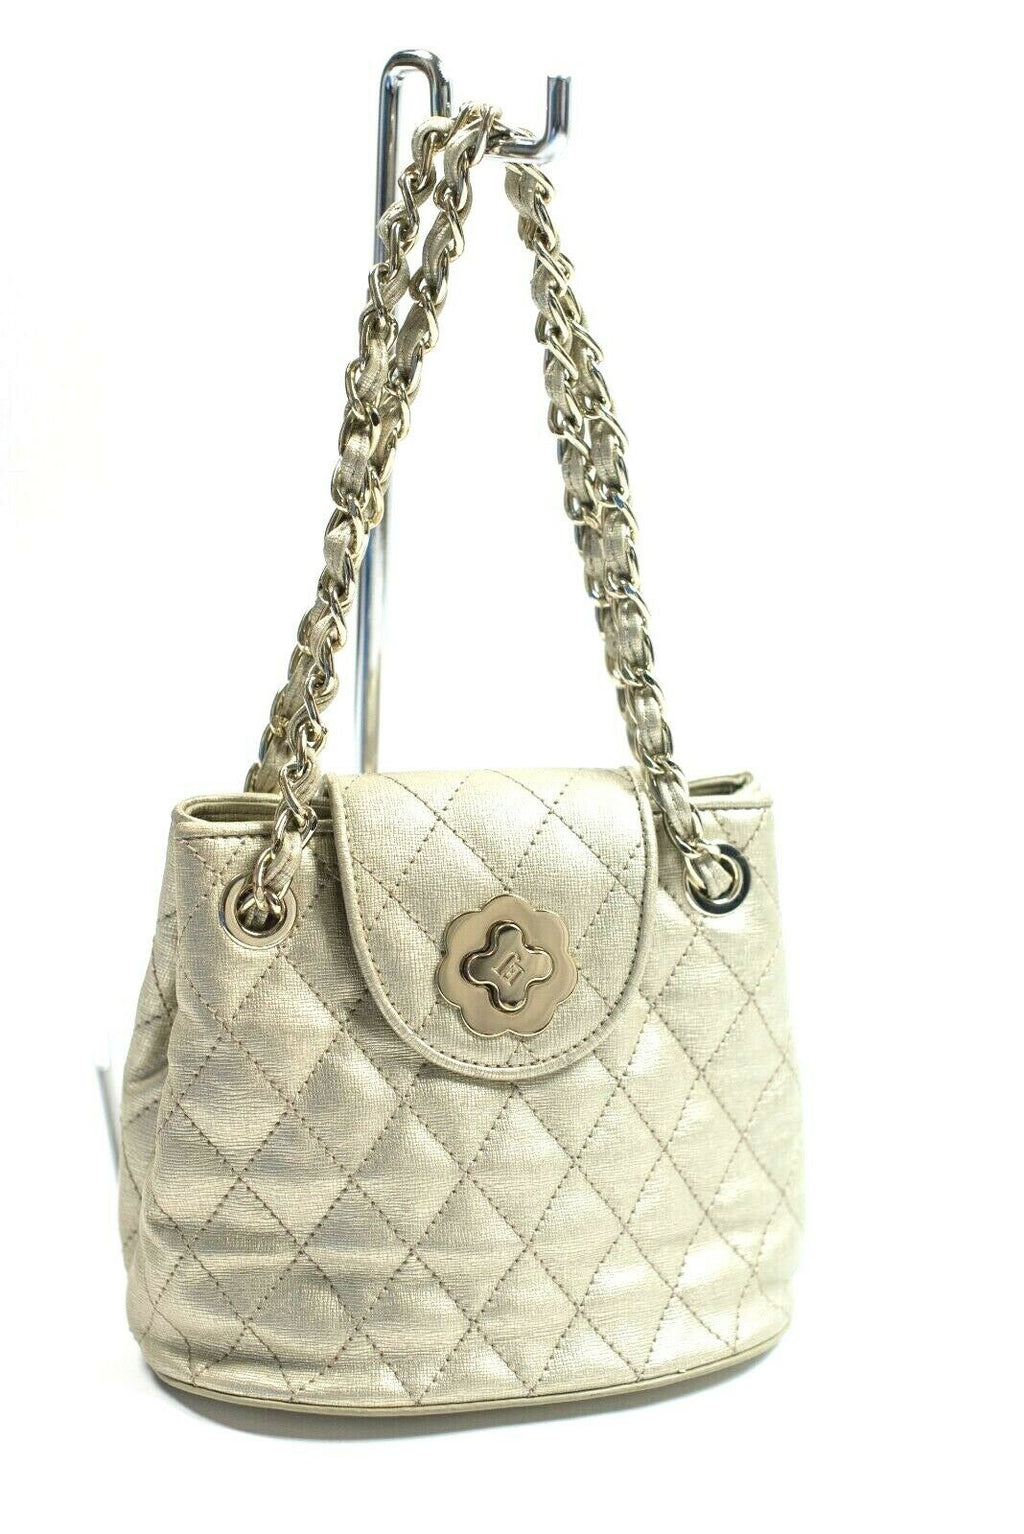 Eric Javits Womens Gold Bag Metallic Mini Liz Quilted Leather Chain Strap Purse